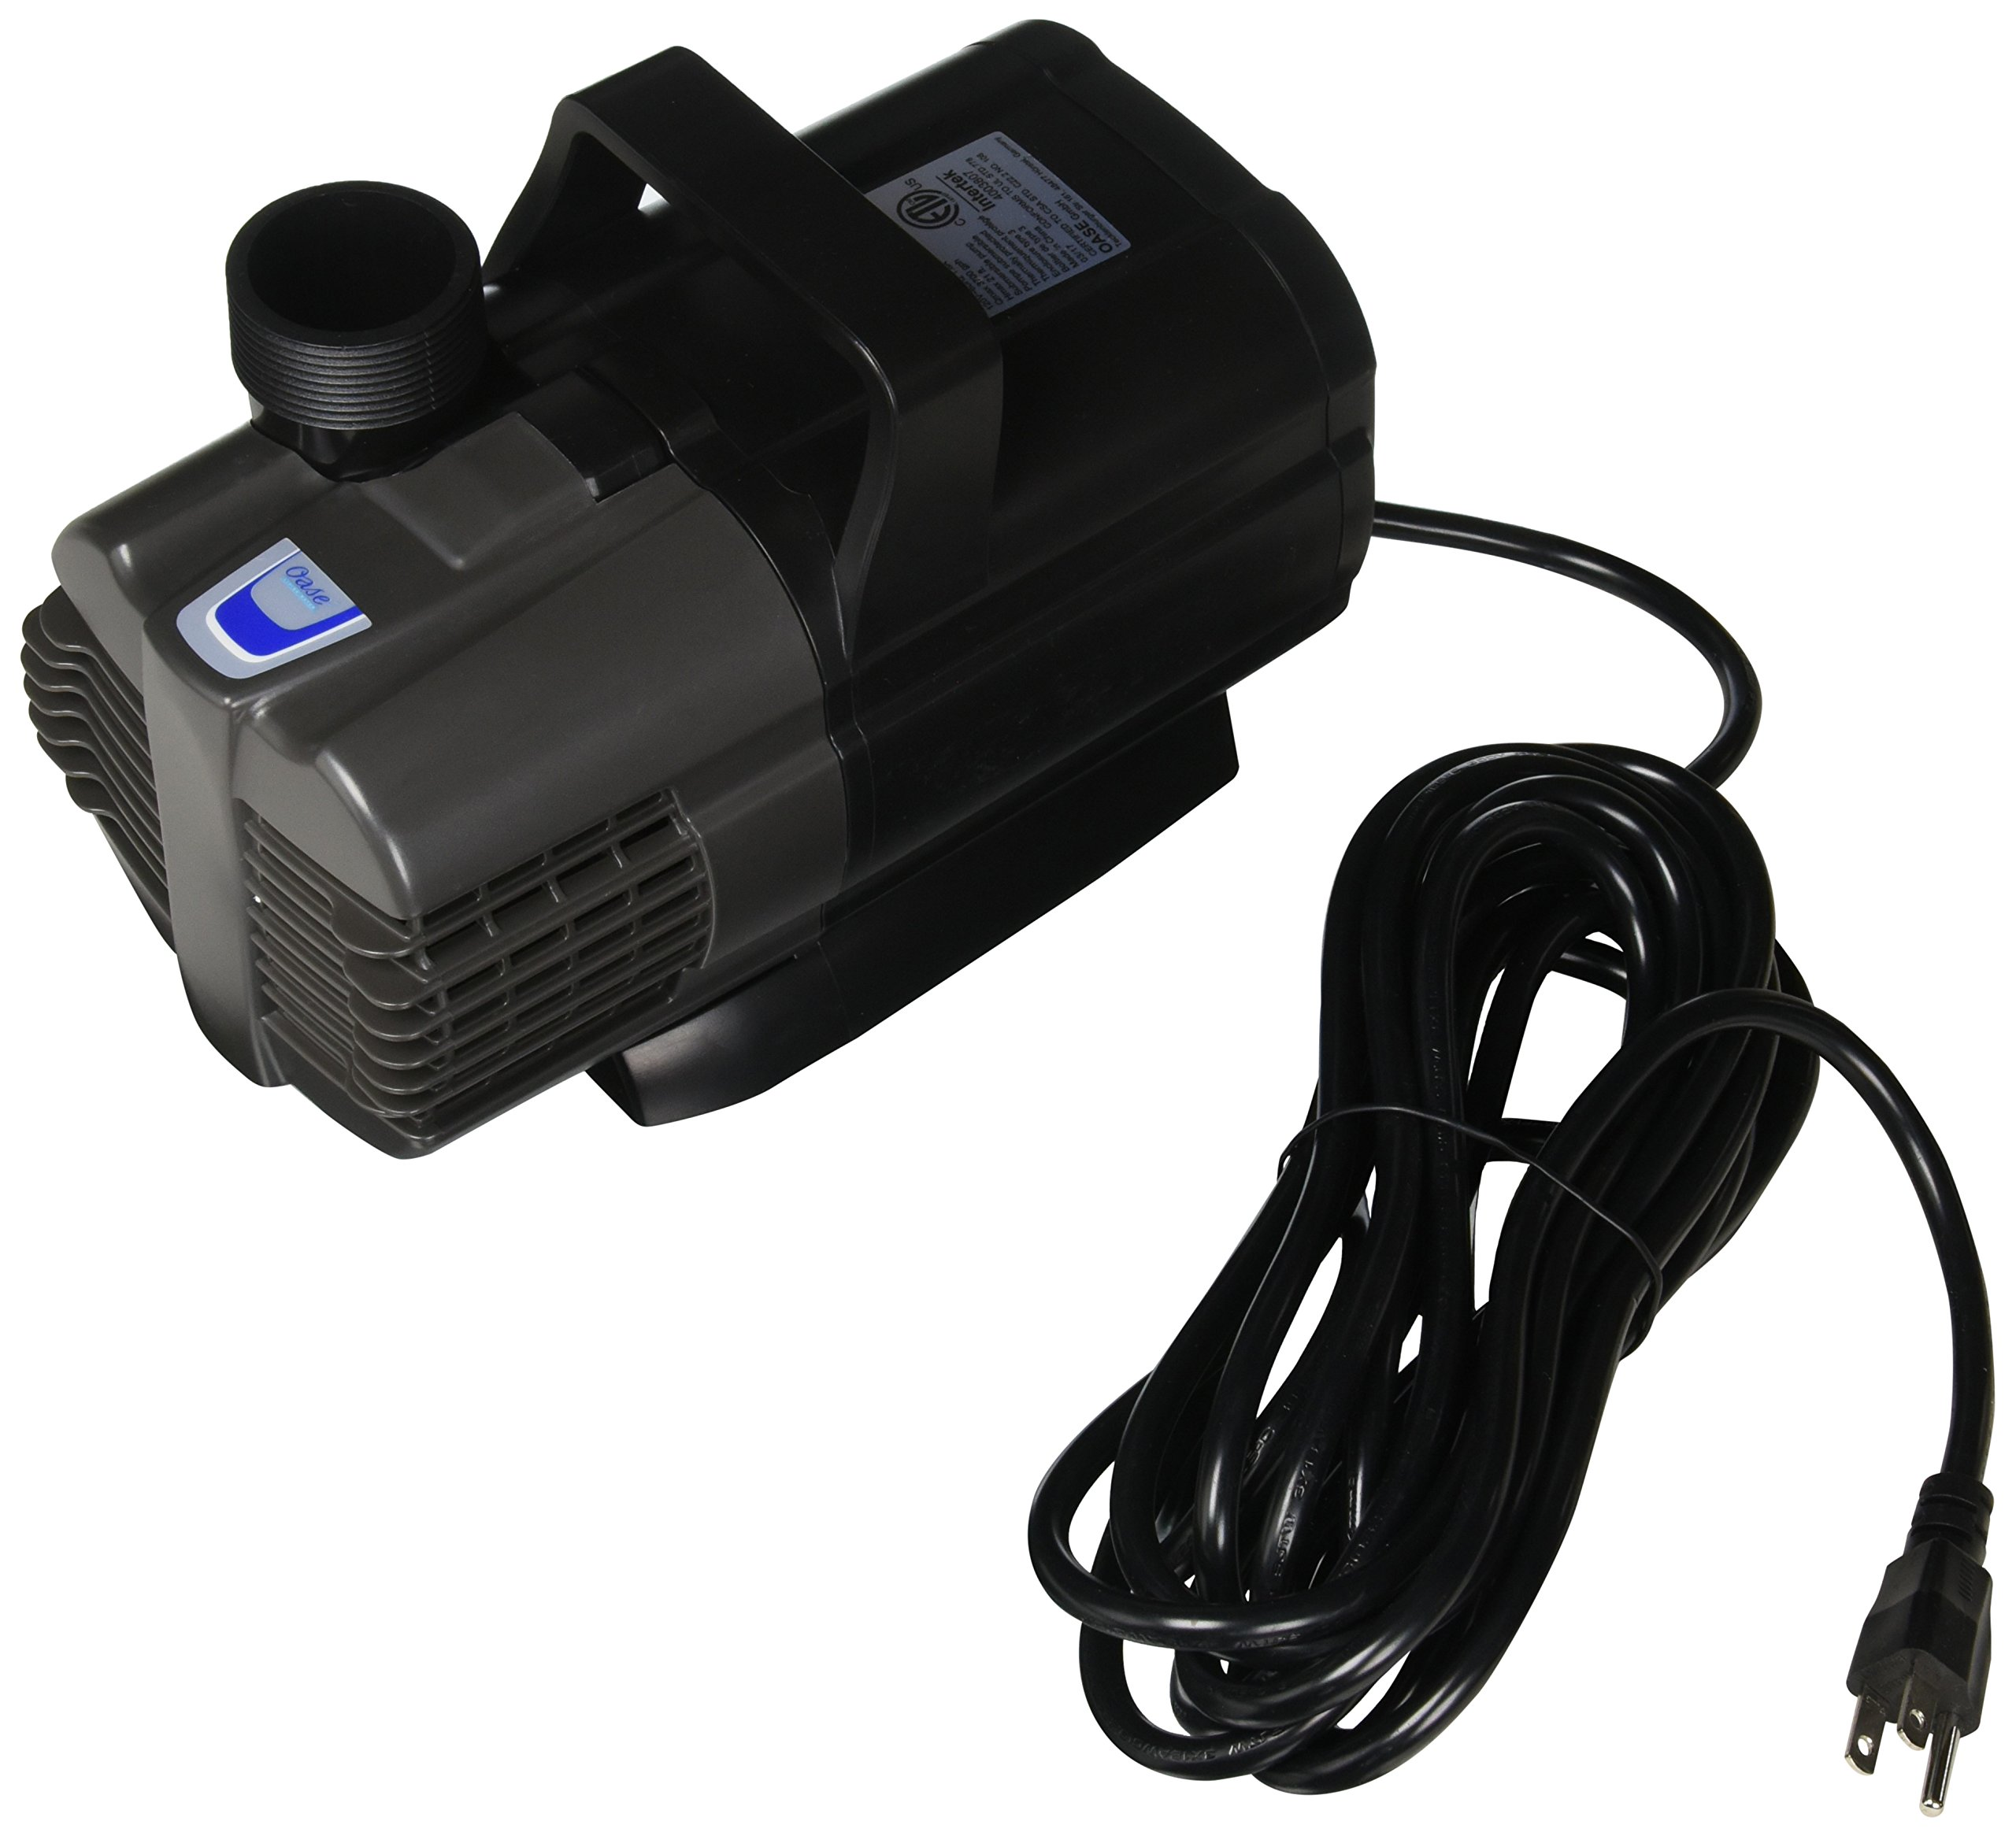 Oase 45423 3700 gallon/hr Waterfall Pump